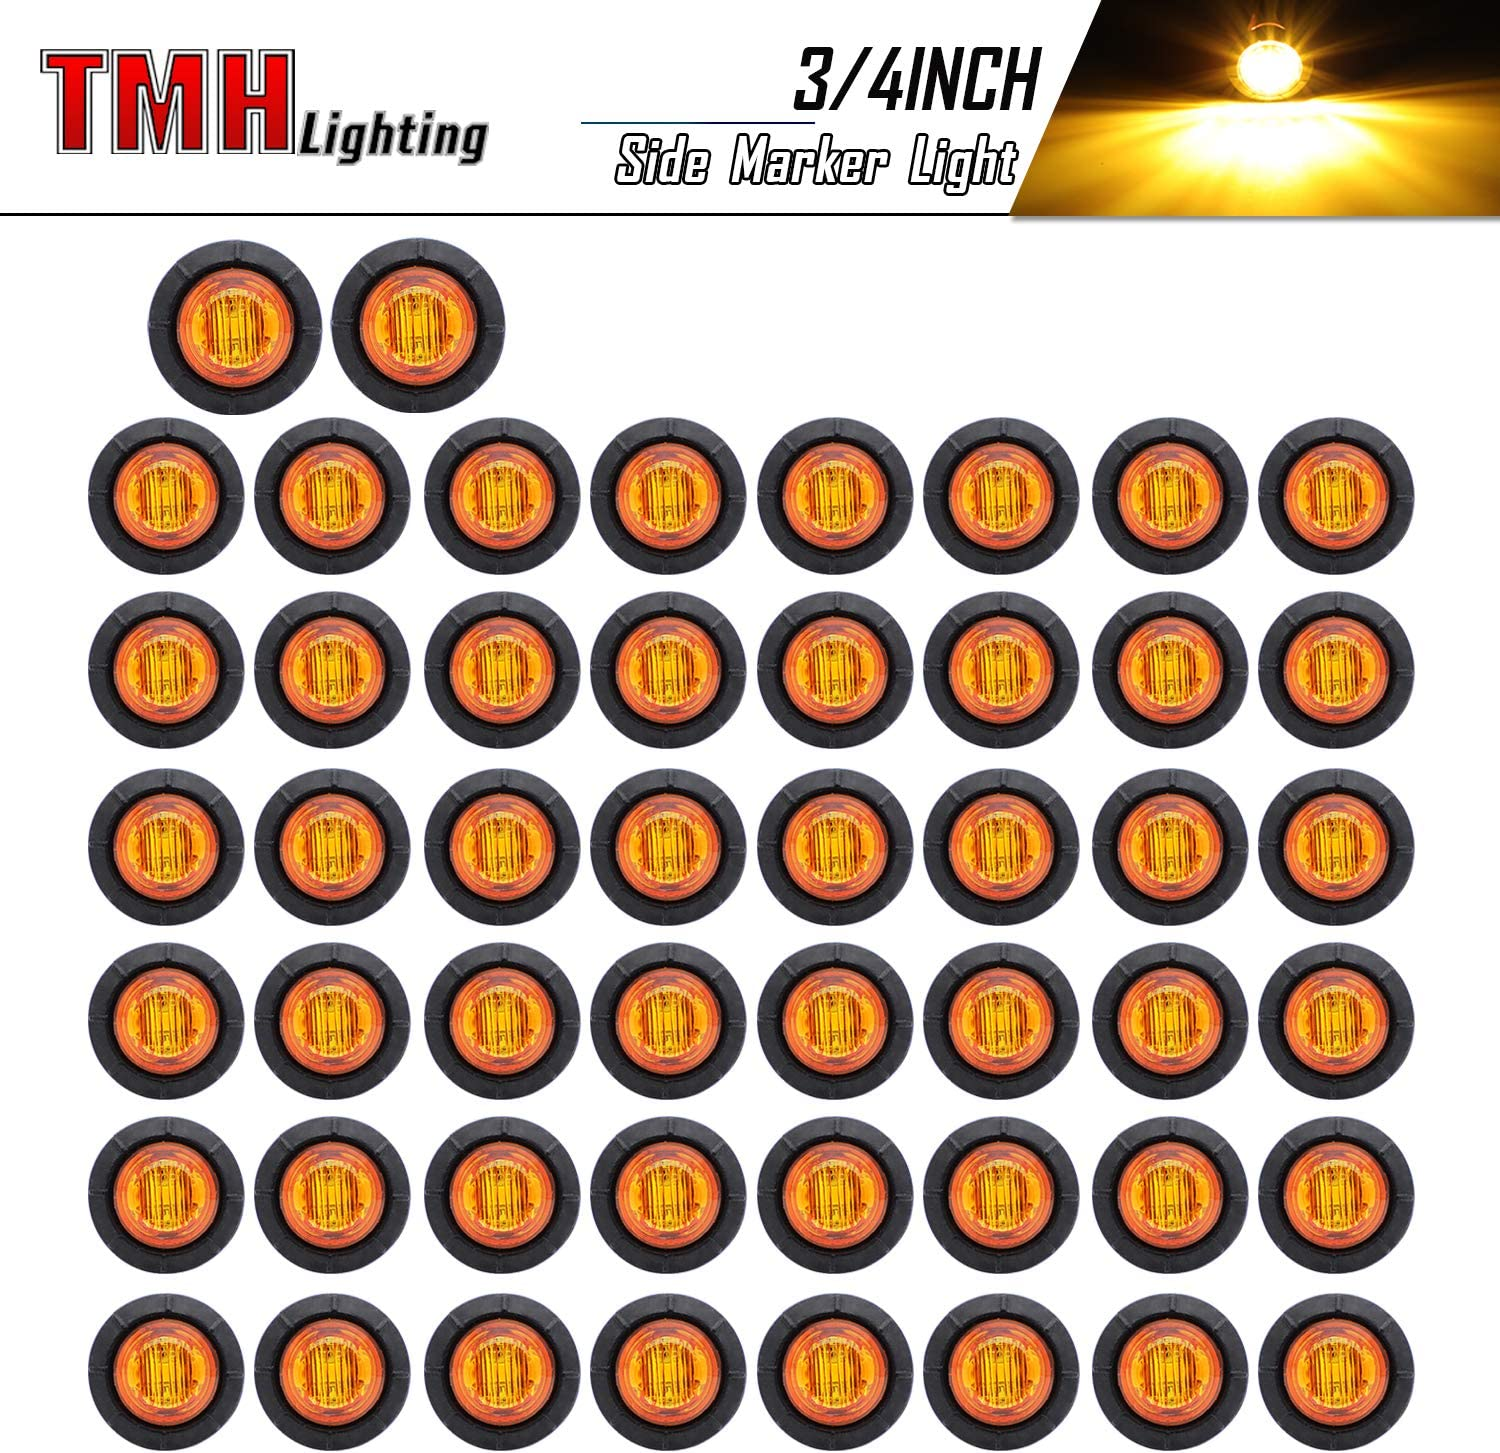 TMH 3 4-Inch Mount Amber LED Trailer Max 55% OFF Pack Mail order cheap Marker of 50 Lights